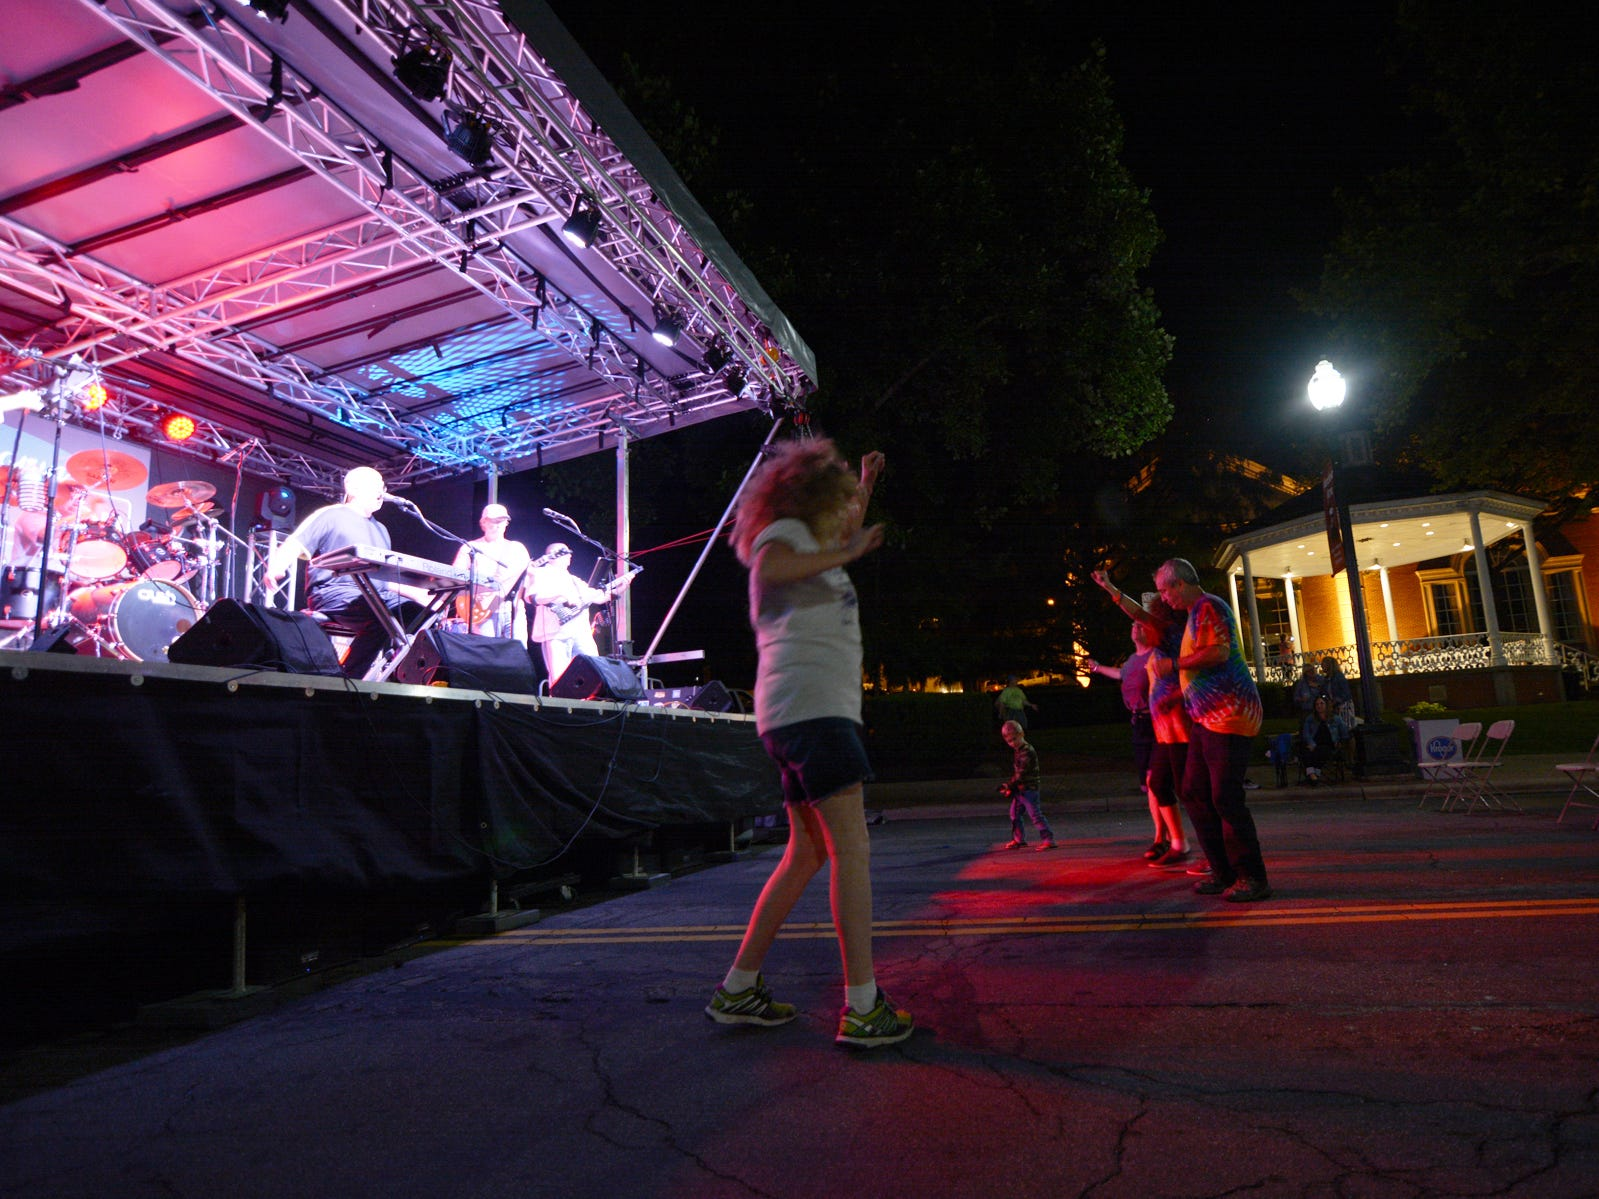 People dance around the Destination Downtown ArtWalk stage Friday night, July 20, 2018, in Lancaster.